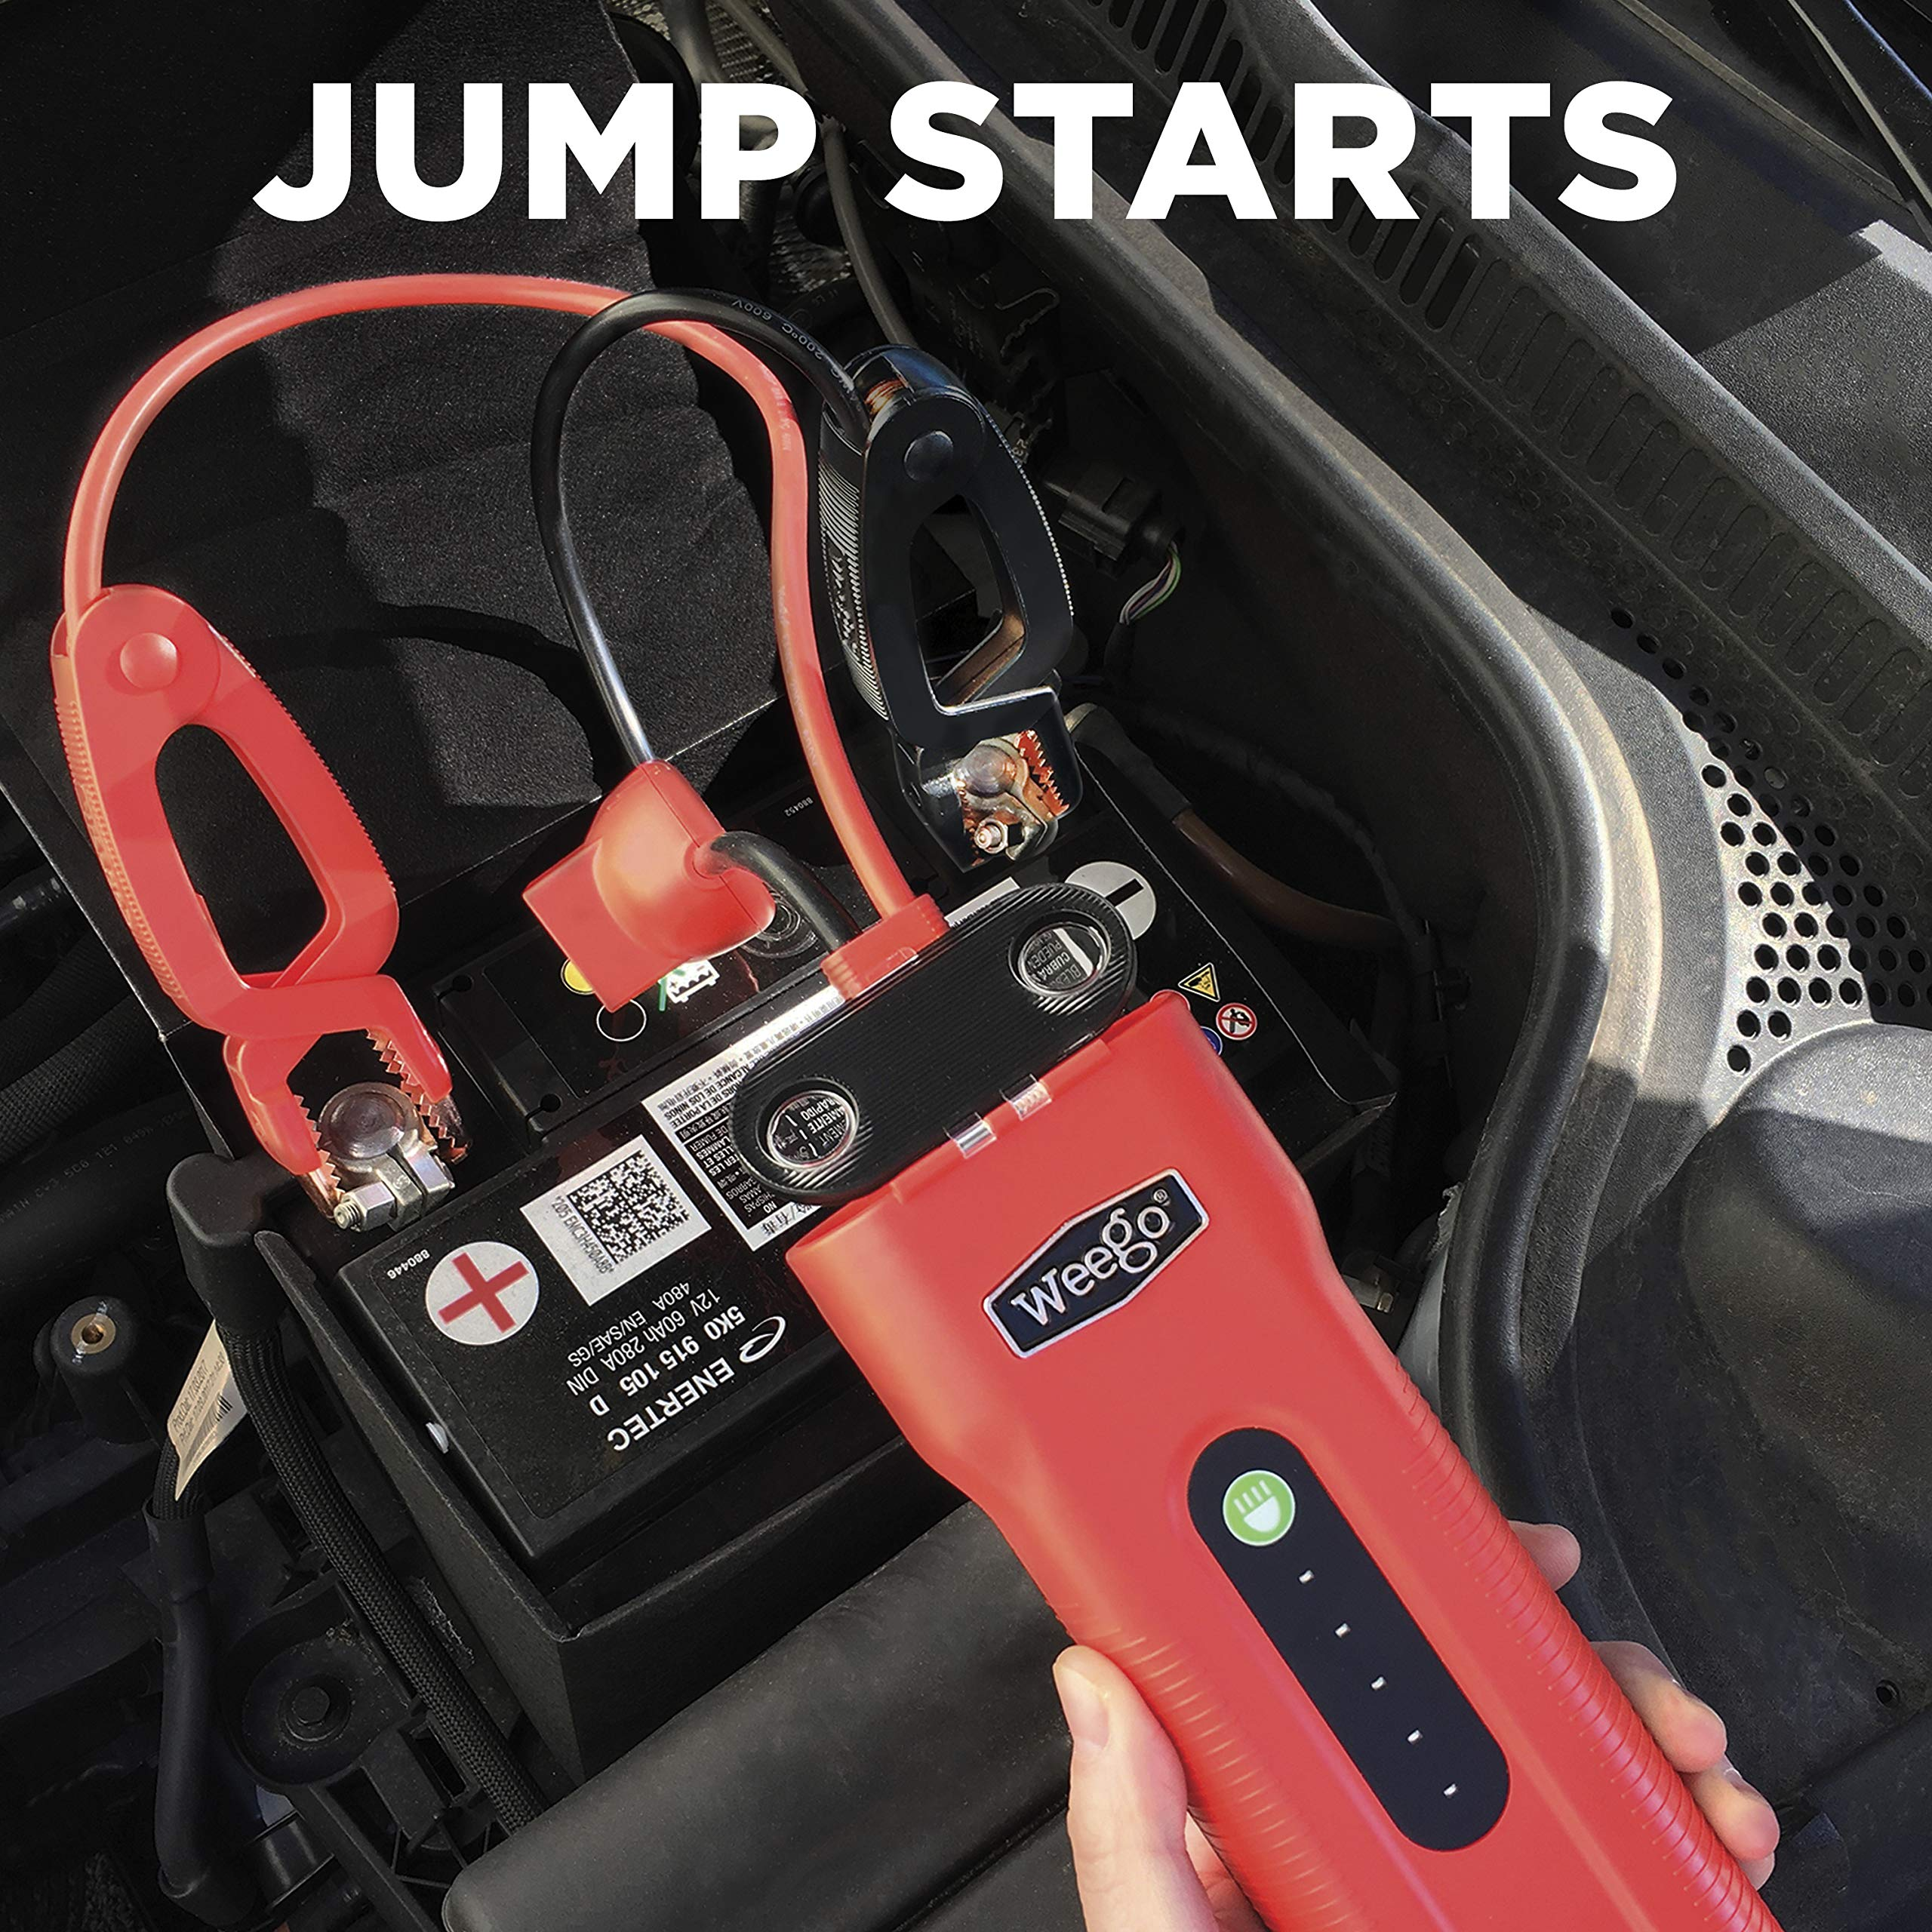 WEEGO 66.1 Jump Starting Power Pack (NEW 2019 Model) 2500 Peak 600 Cranking Amps High Performance Lithium Ion Jump Starter Quick Charges Phones 600 Lumen LED Flashlight Water Resistant by Weego (Image #2)